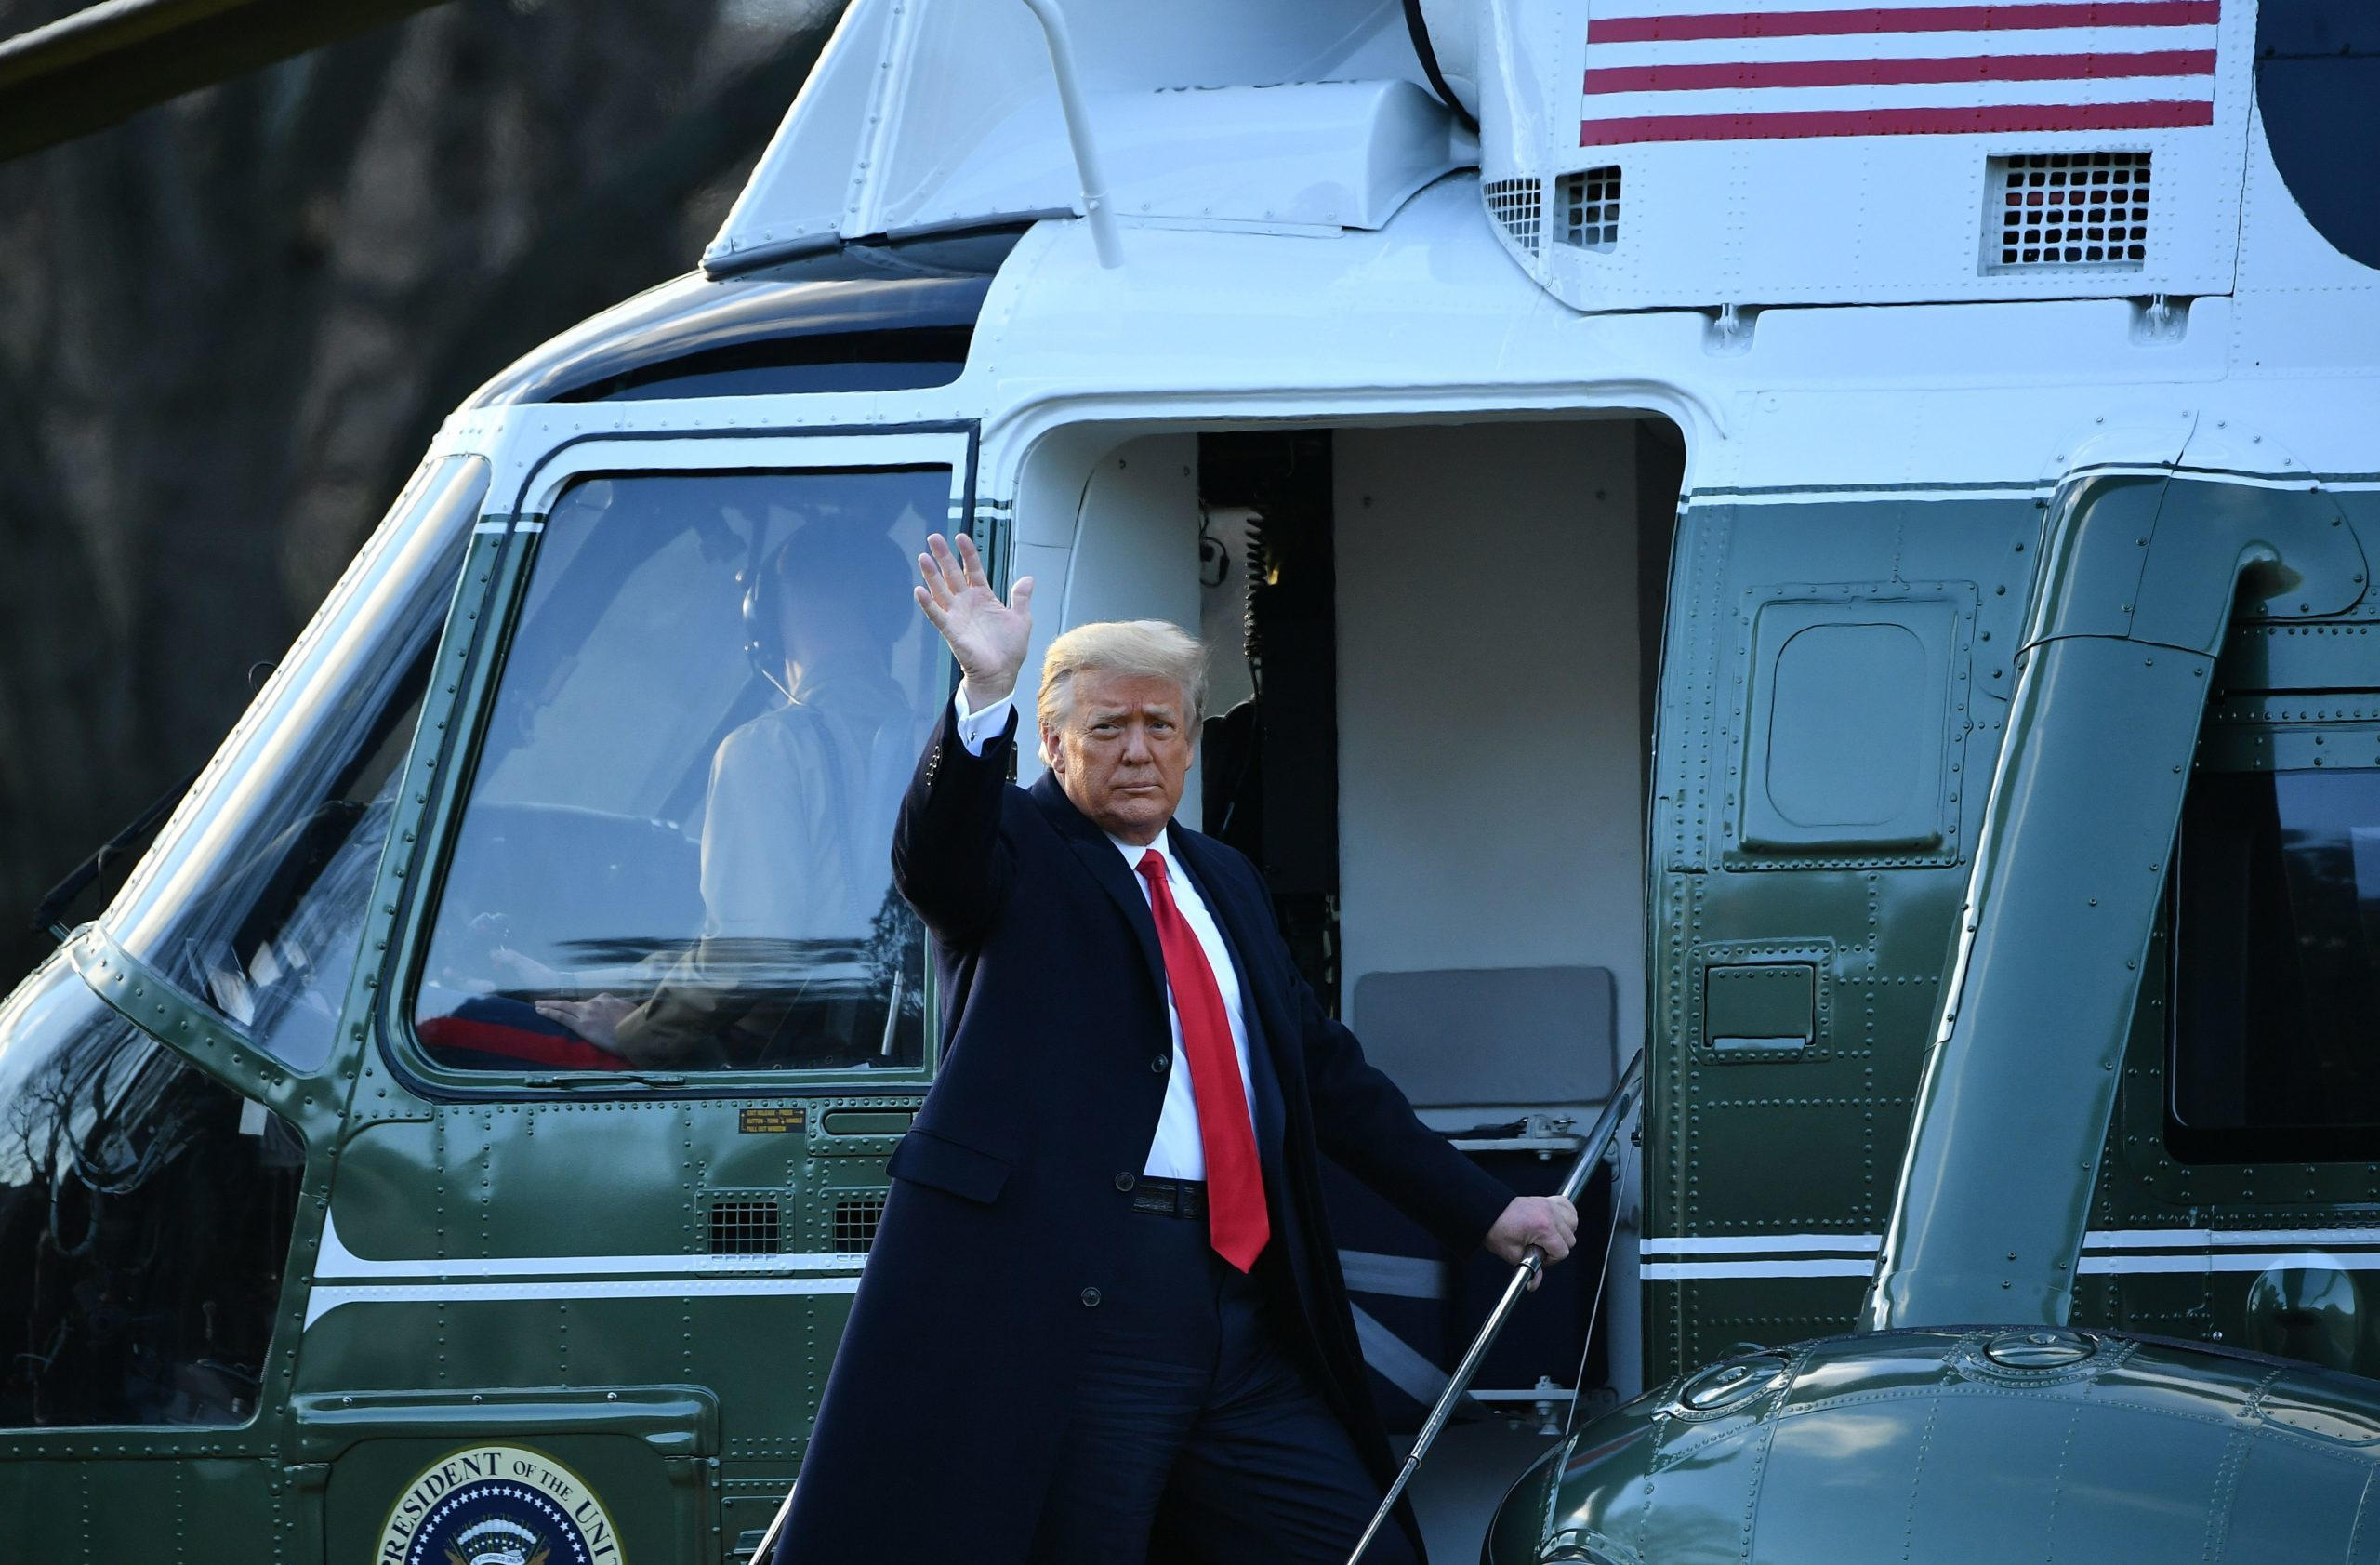 Outgoing US President Donald Trump waves as he boards Marine One at the White House in Washington, DC, on January 20, 2021. (Photo by MANDEL NGAN/AFP via Getty Images)